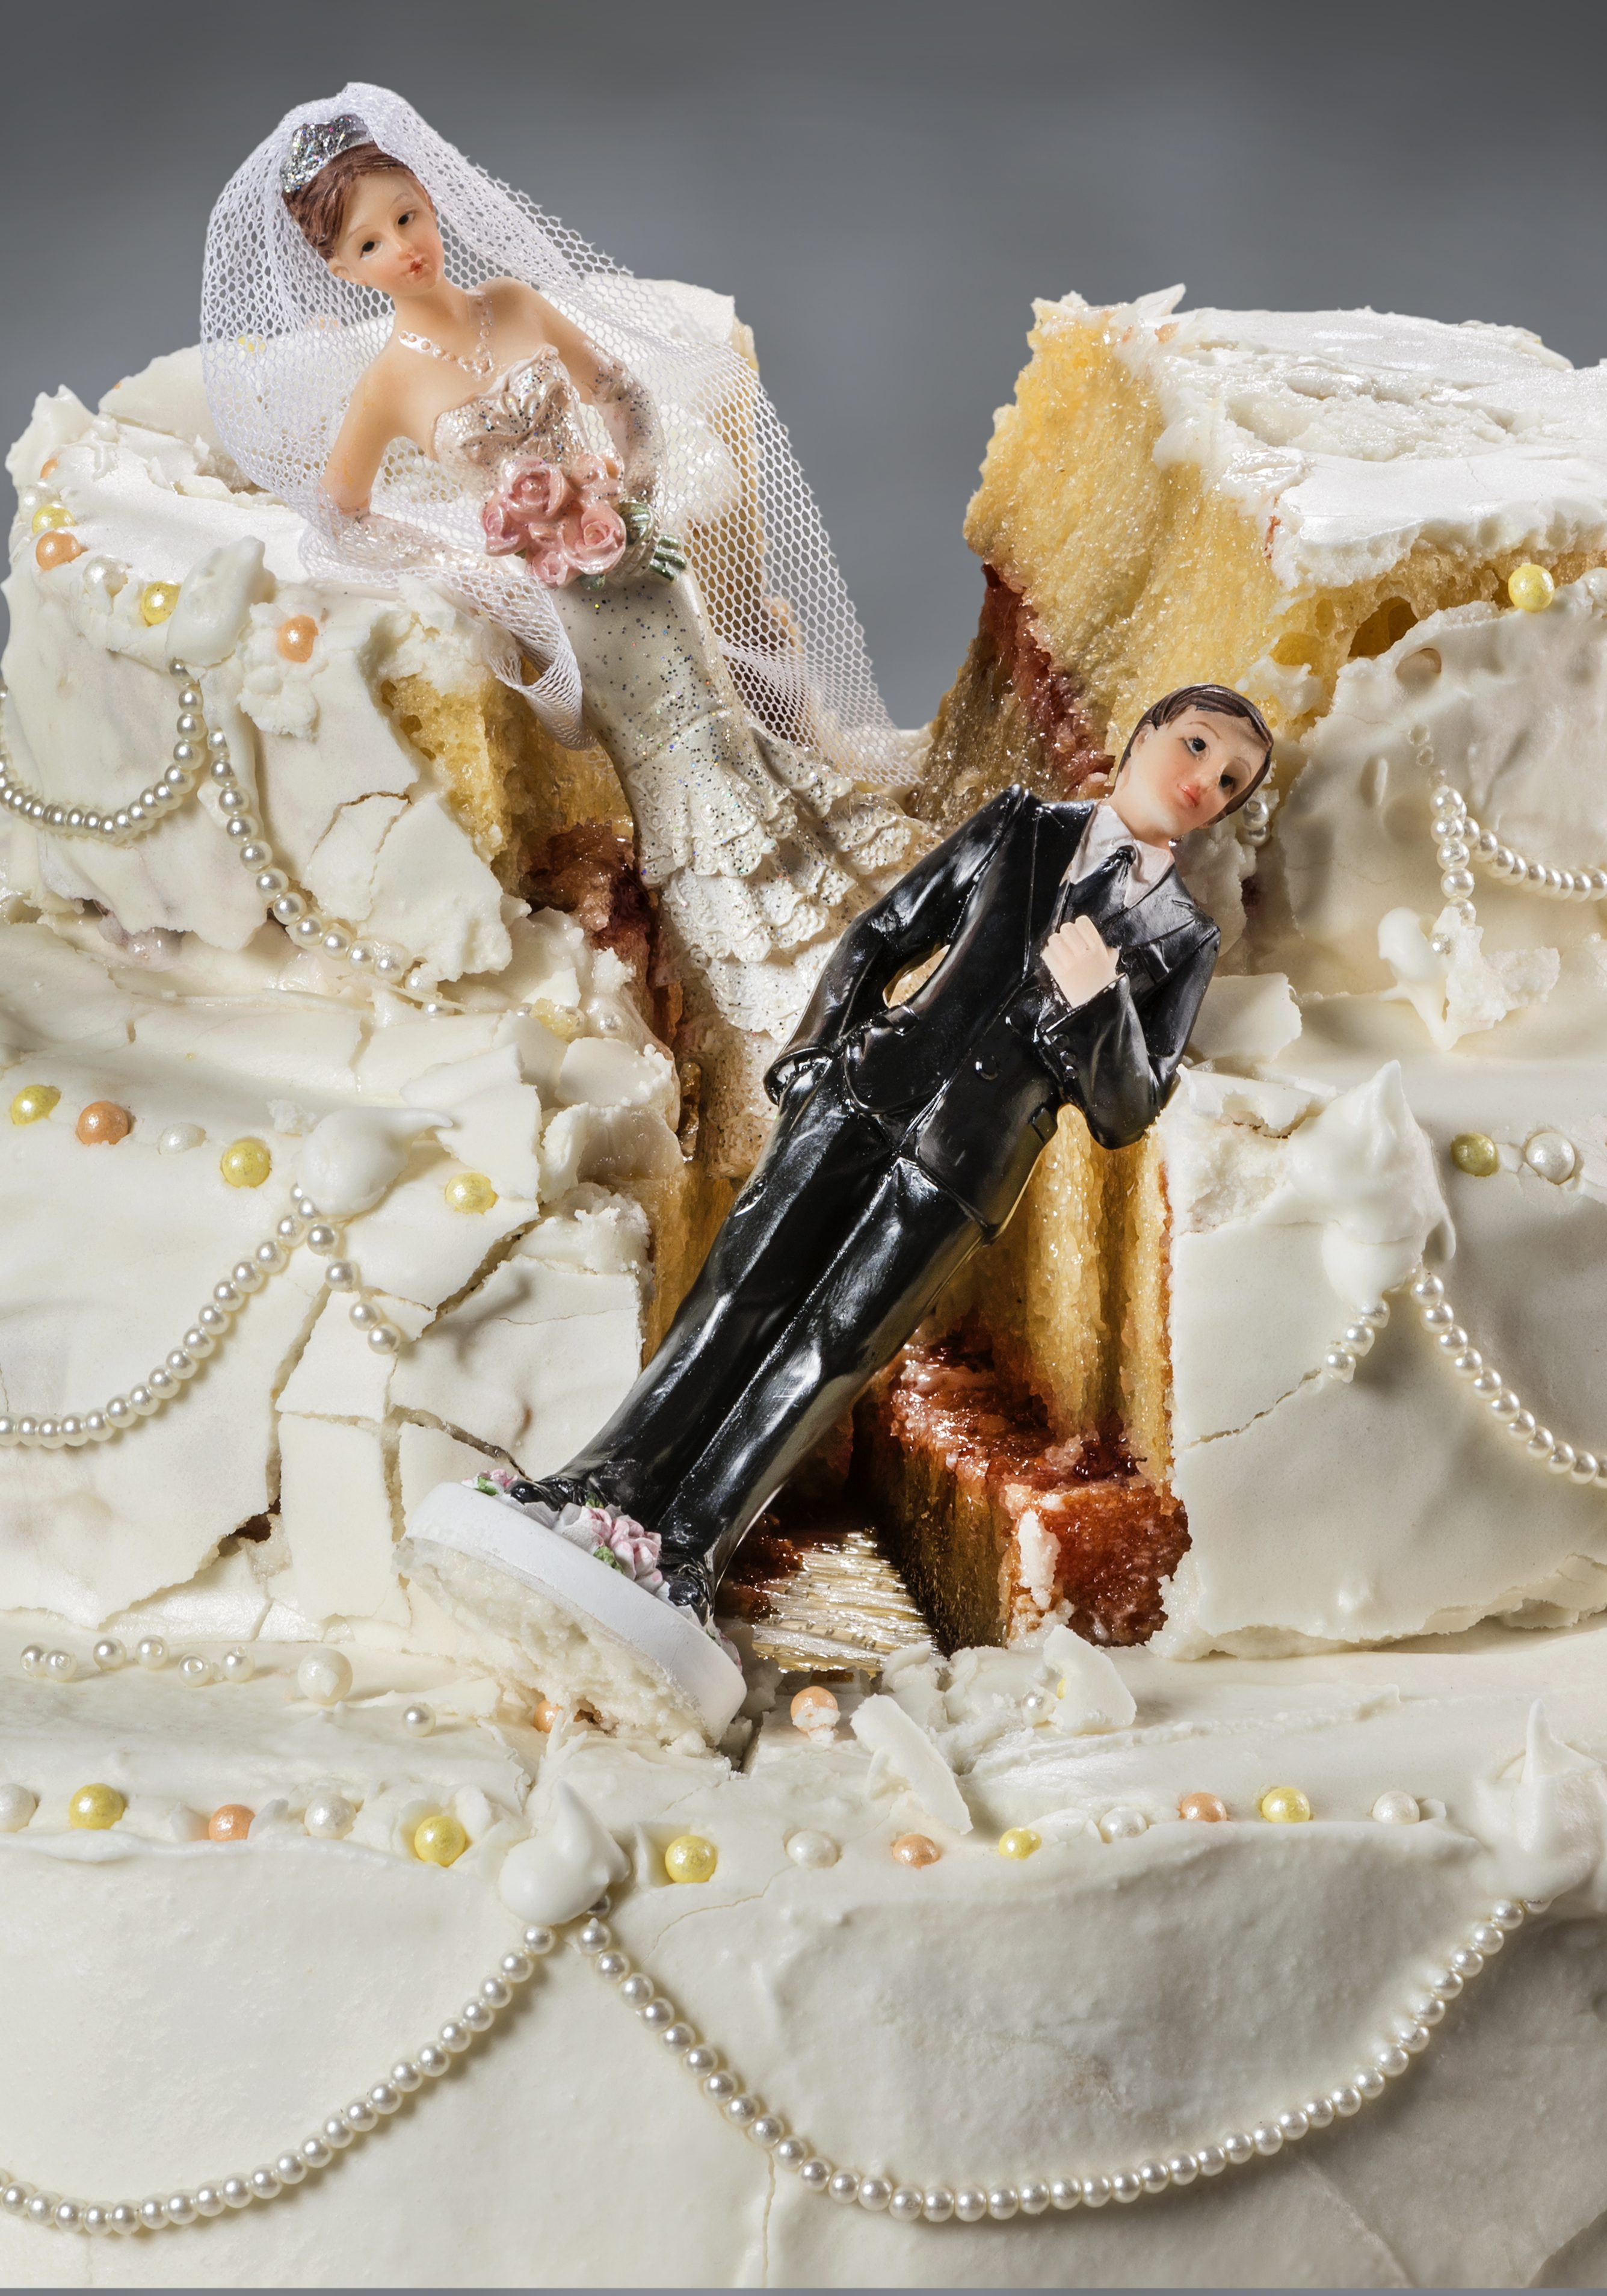 Wedding Cake Disaster